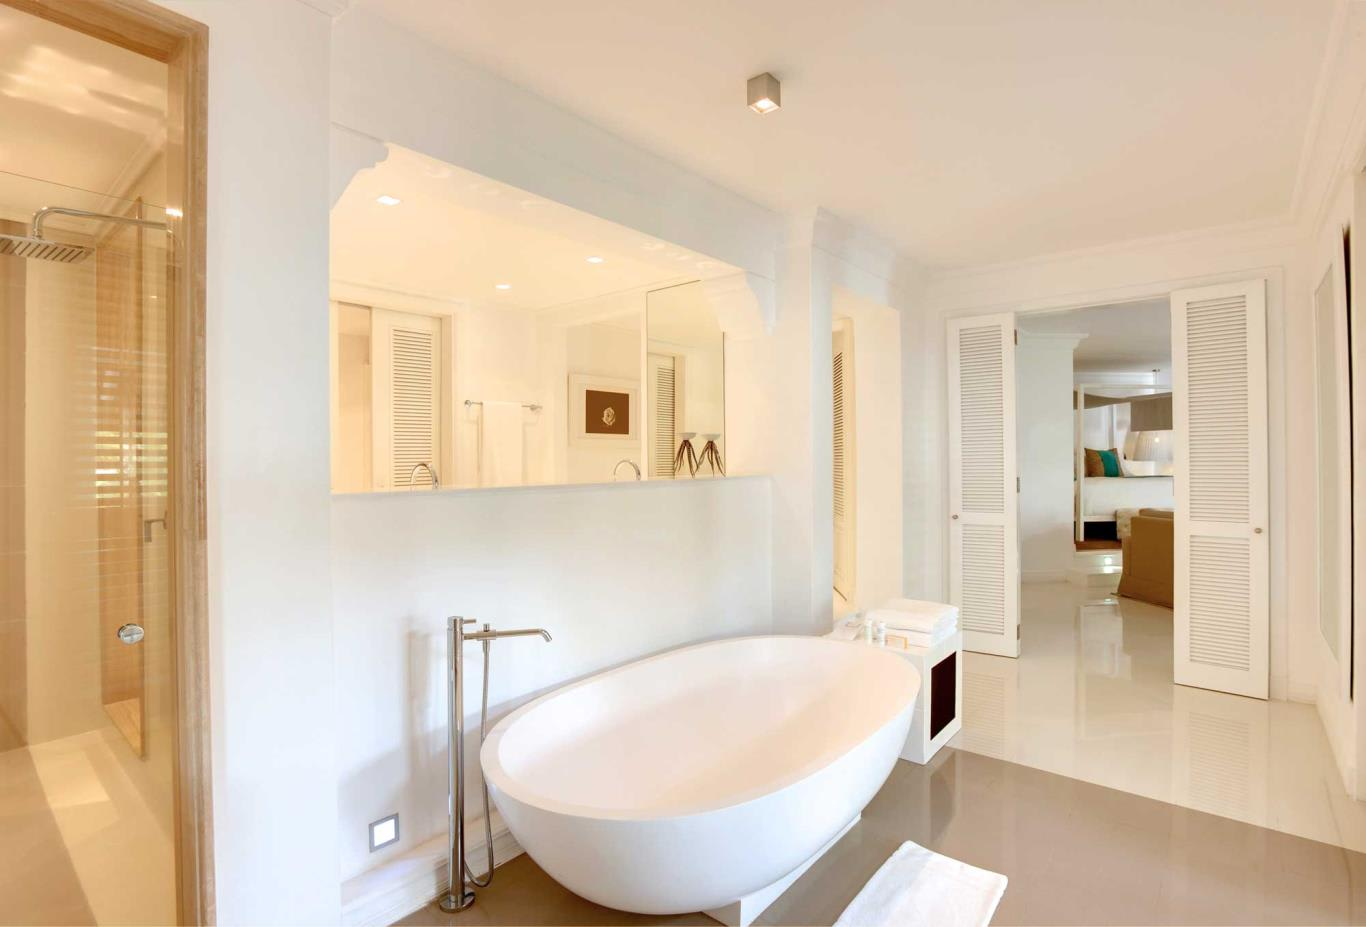 LUX* Suite Bathroom